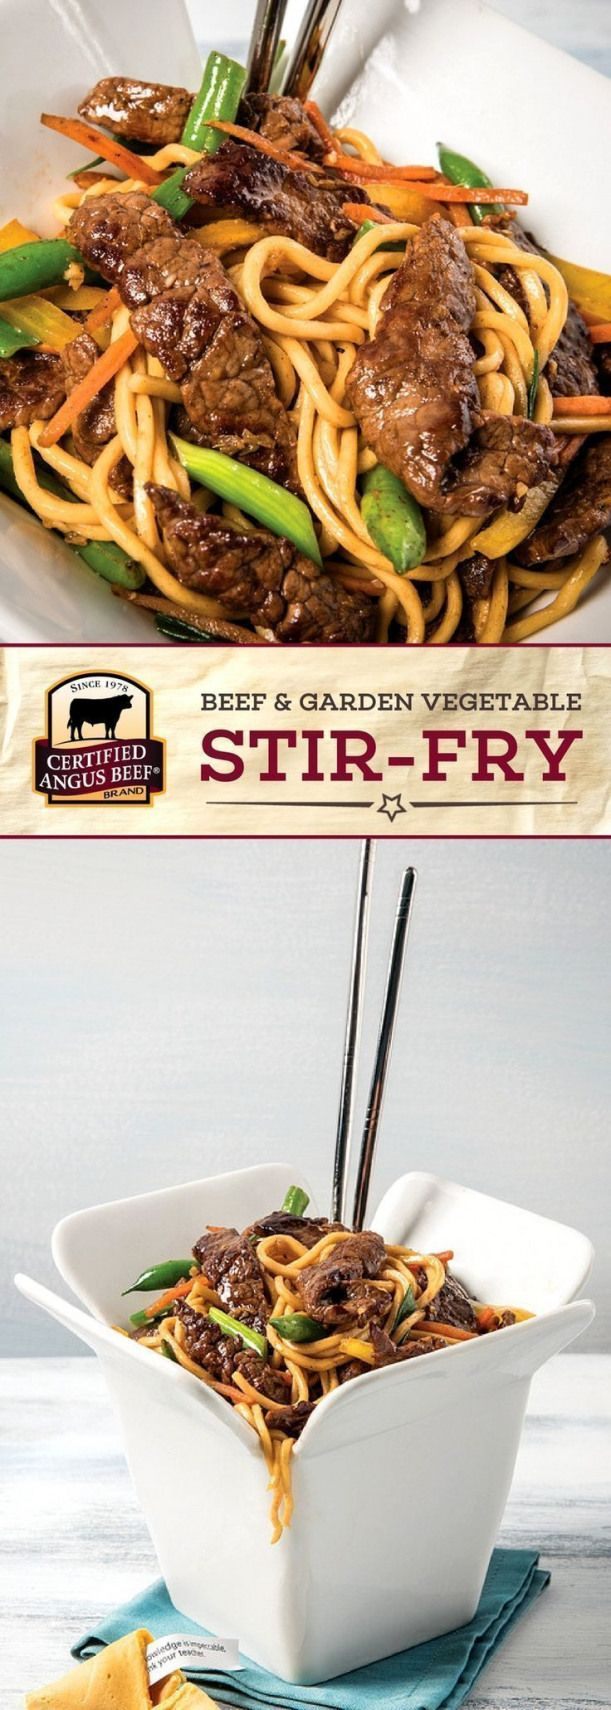 Certified Angus Beef??????????????????? brand Beef & Garden Vegetable Stir Fry is deliciously EASY to make! The best bottom round STEAK marinated with a tasty mix including plum sauce and ginger is cooked with fresh vegetables and chow mein noodles or rice for an amazingly FRESH meal.